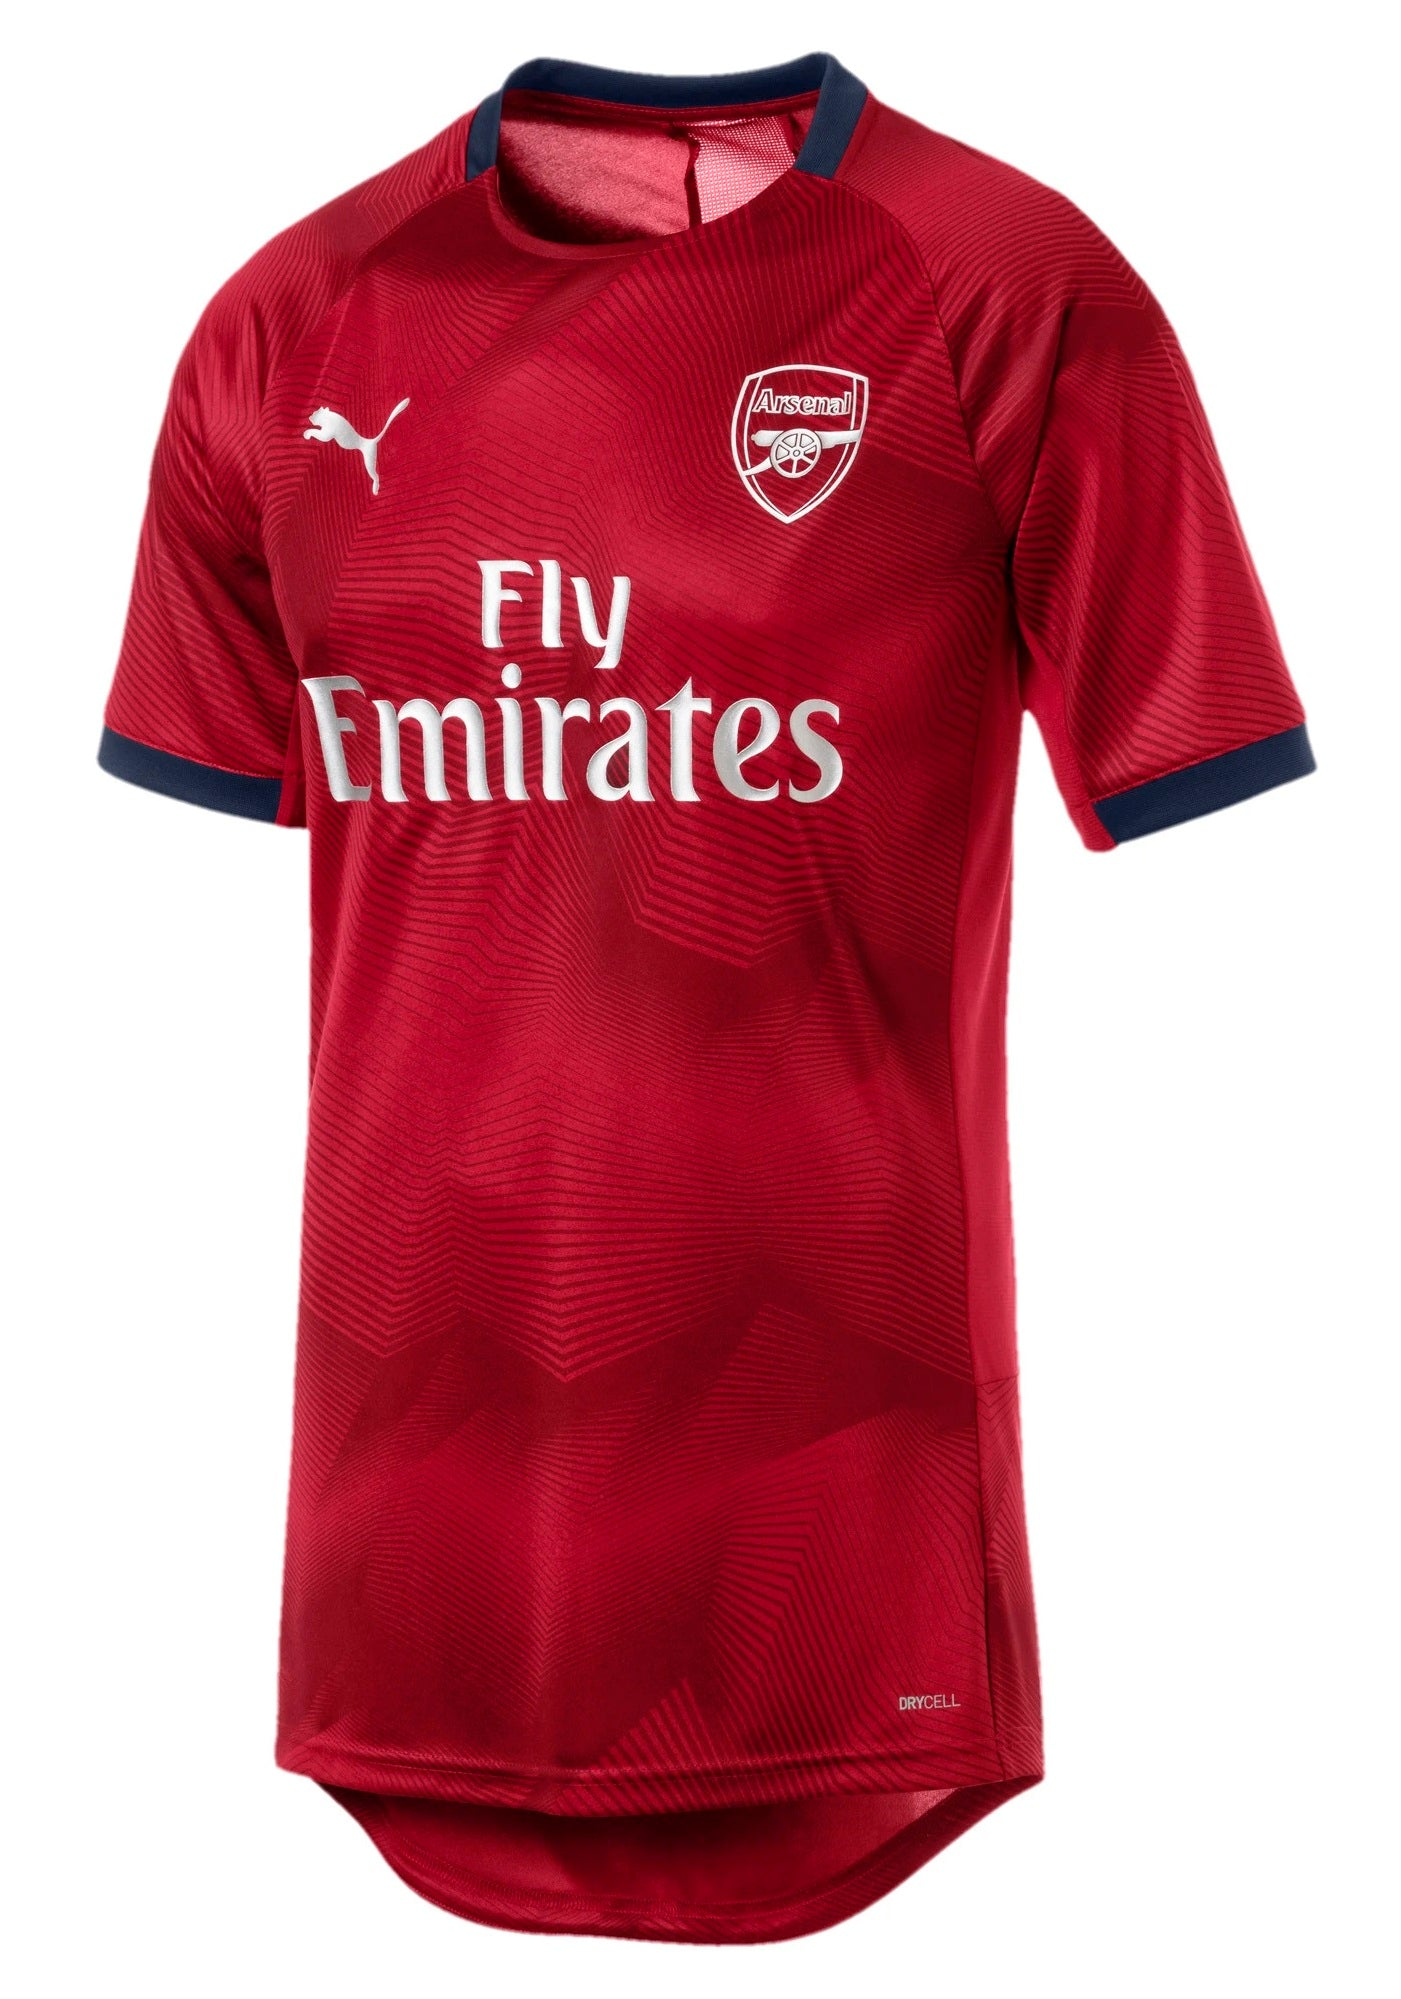 Puma FC Arsenal Graphic Jersey 75463301